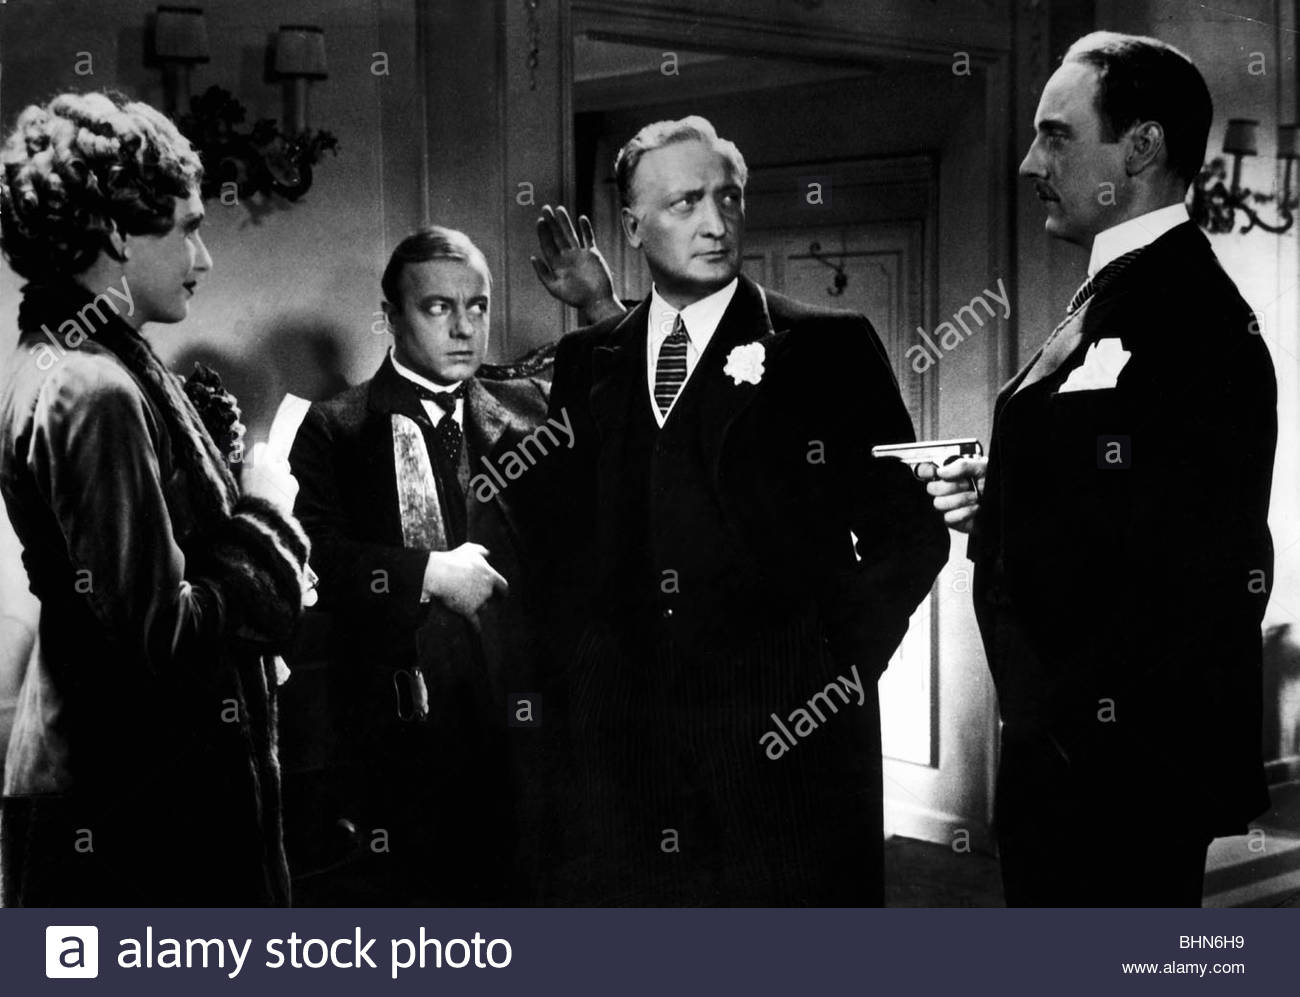 movie, 'The Man Who Was Sherlock Holmes' (Der Mann, der Sherlock Holmes war), DEU 1937, director: Karl Hartl, - Stock Image